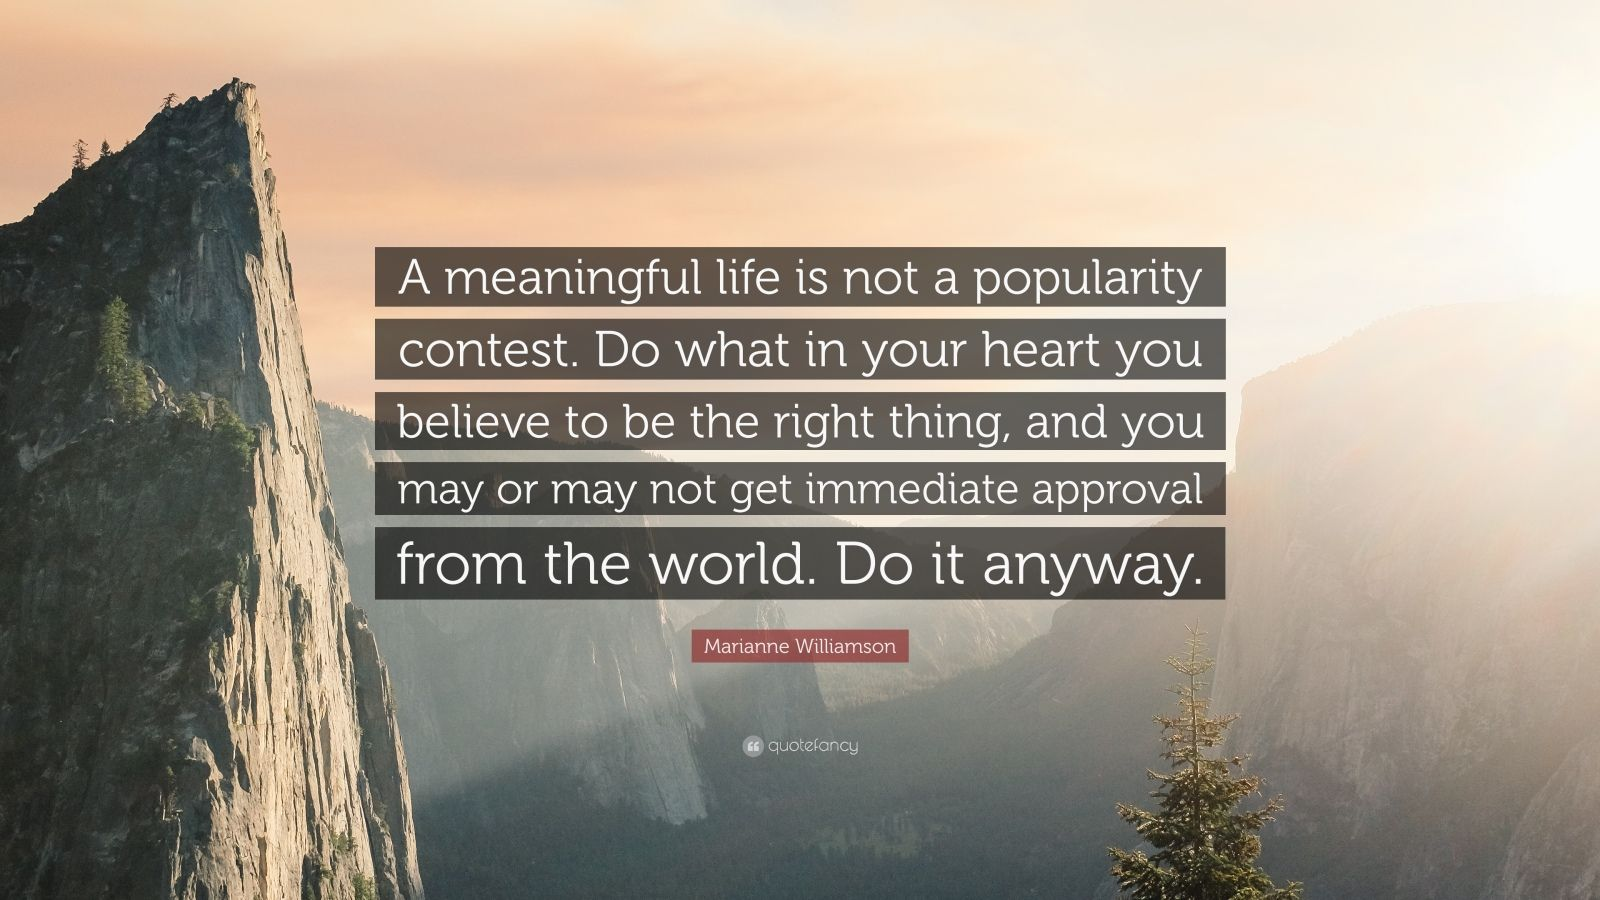 """Marianne Williamson Quote: """"A meaningful life is not a popularity contest. Do what in your heart you believe to be the right thing, and you may or may not get immediate approval from the world. Do it anyway."""""""